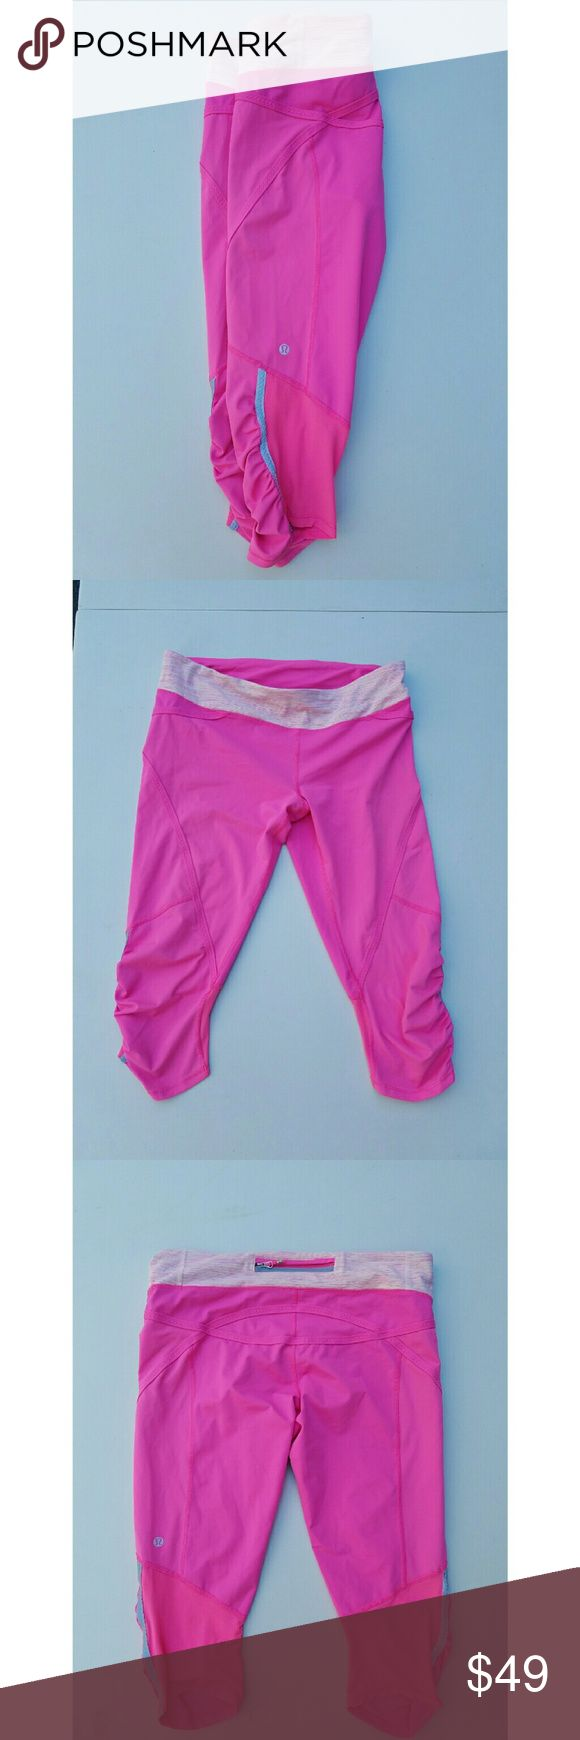 Lululemon Run Pace Crop the wee are from space  10 Preowned pair of Lululemon Run Pace Crop in a bright pink color with the wee are from space waistband  Mesh fabric on back of bottoms 3 pockets on waistband (rear one has a zipper) and a drawtape  Reflective strips on sides of legs   Very good preowned condition few minor snags in fabric as pictured lululemon athletica Pants Track Pants & Joggers